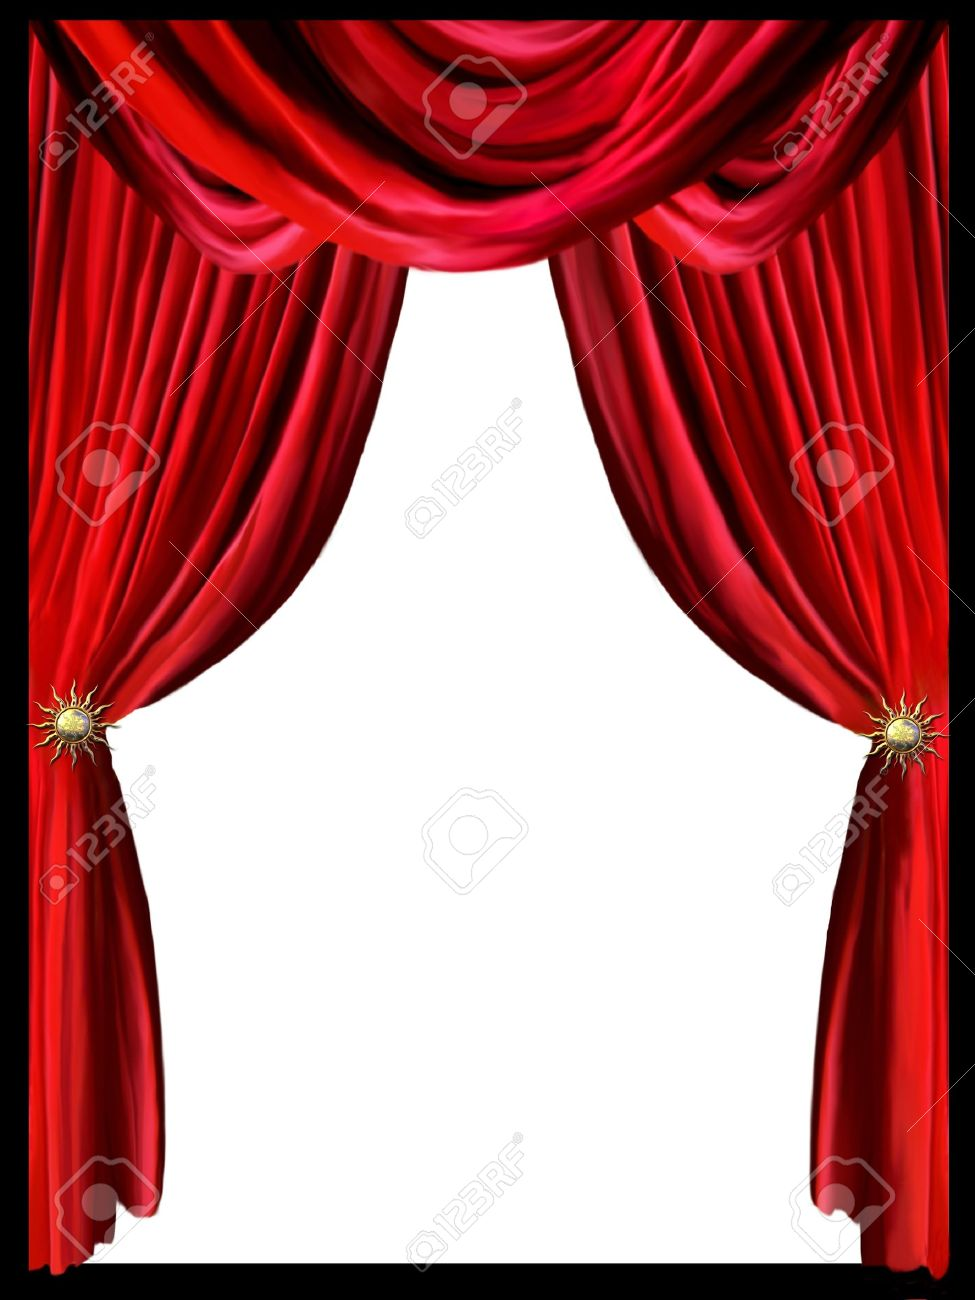 Black and white stage curtain - Theatre Curtain Red Curtain With Border Black In A White Background